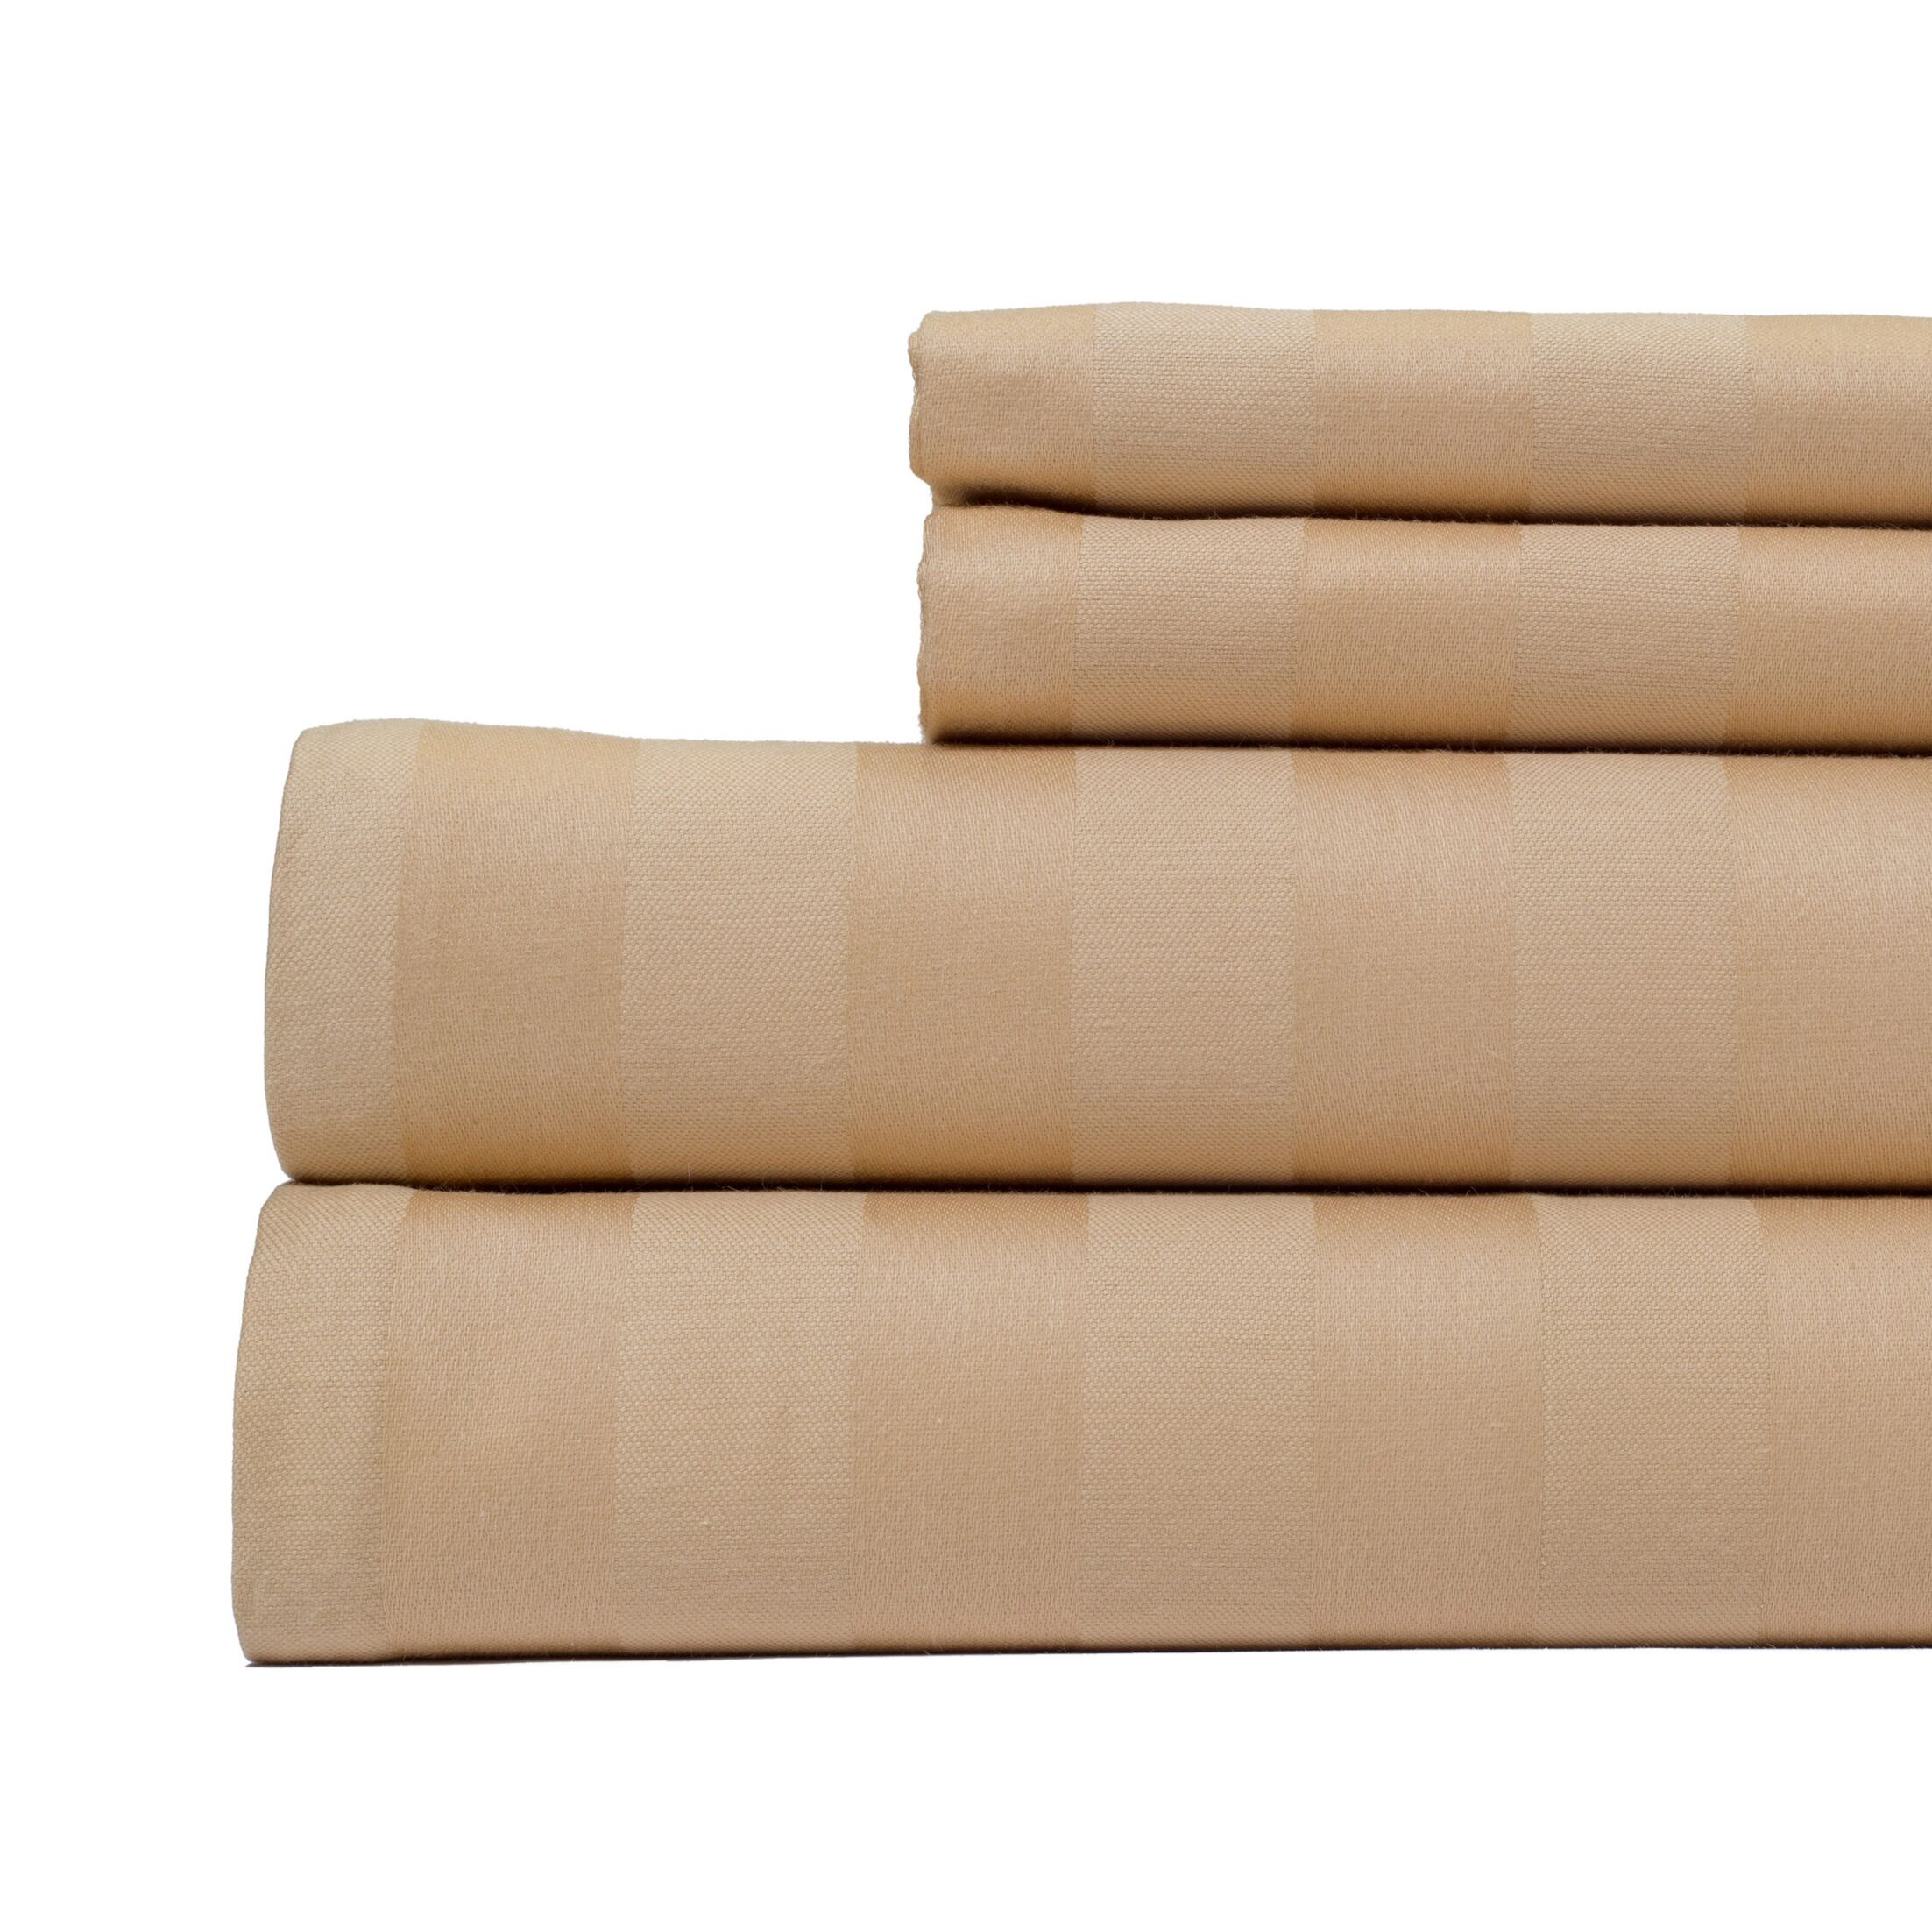 4 Piece 500 Thread Count Egyptian Quality Cotton Sheet Set Color: Tan, Size: California King